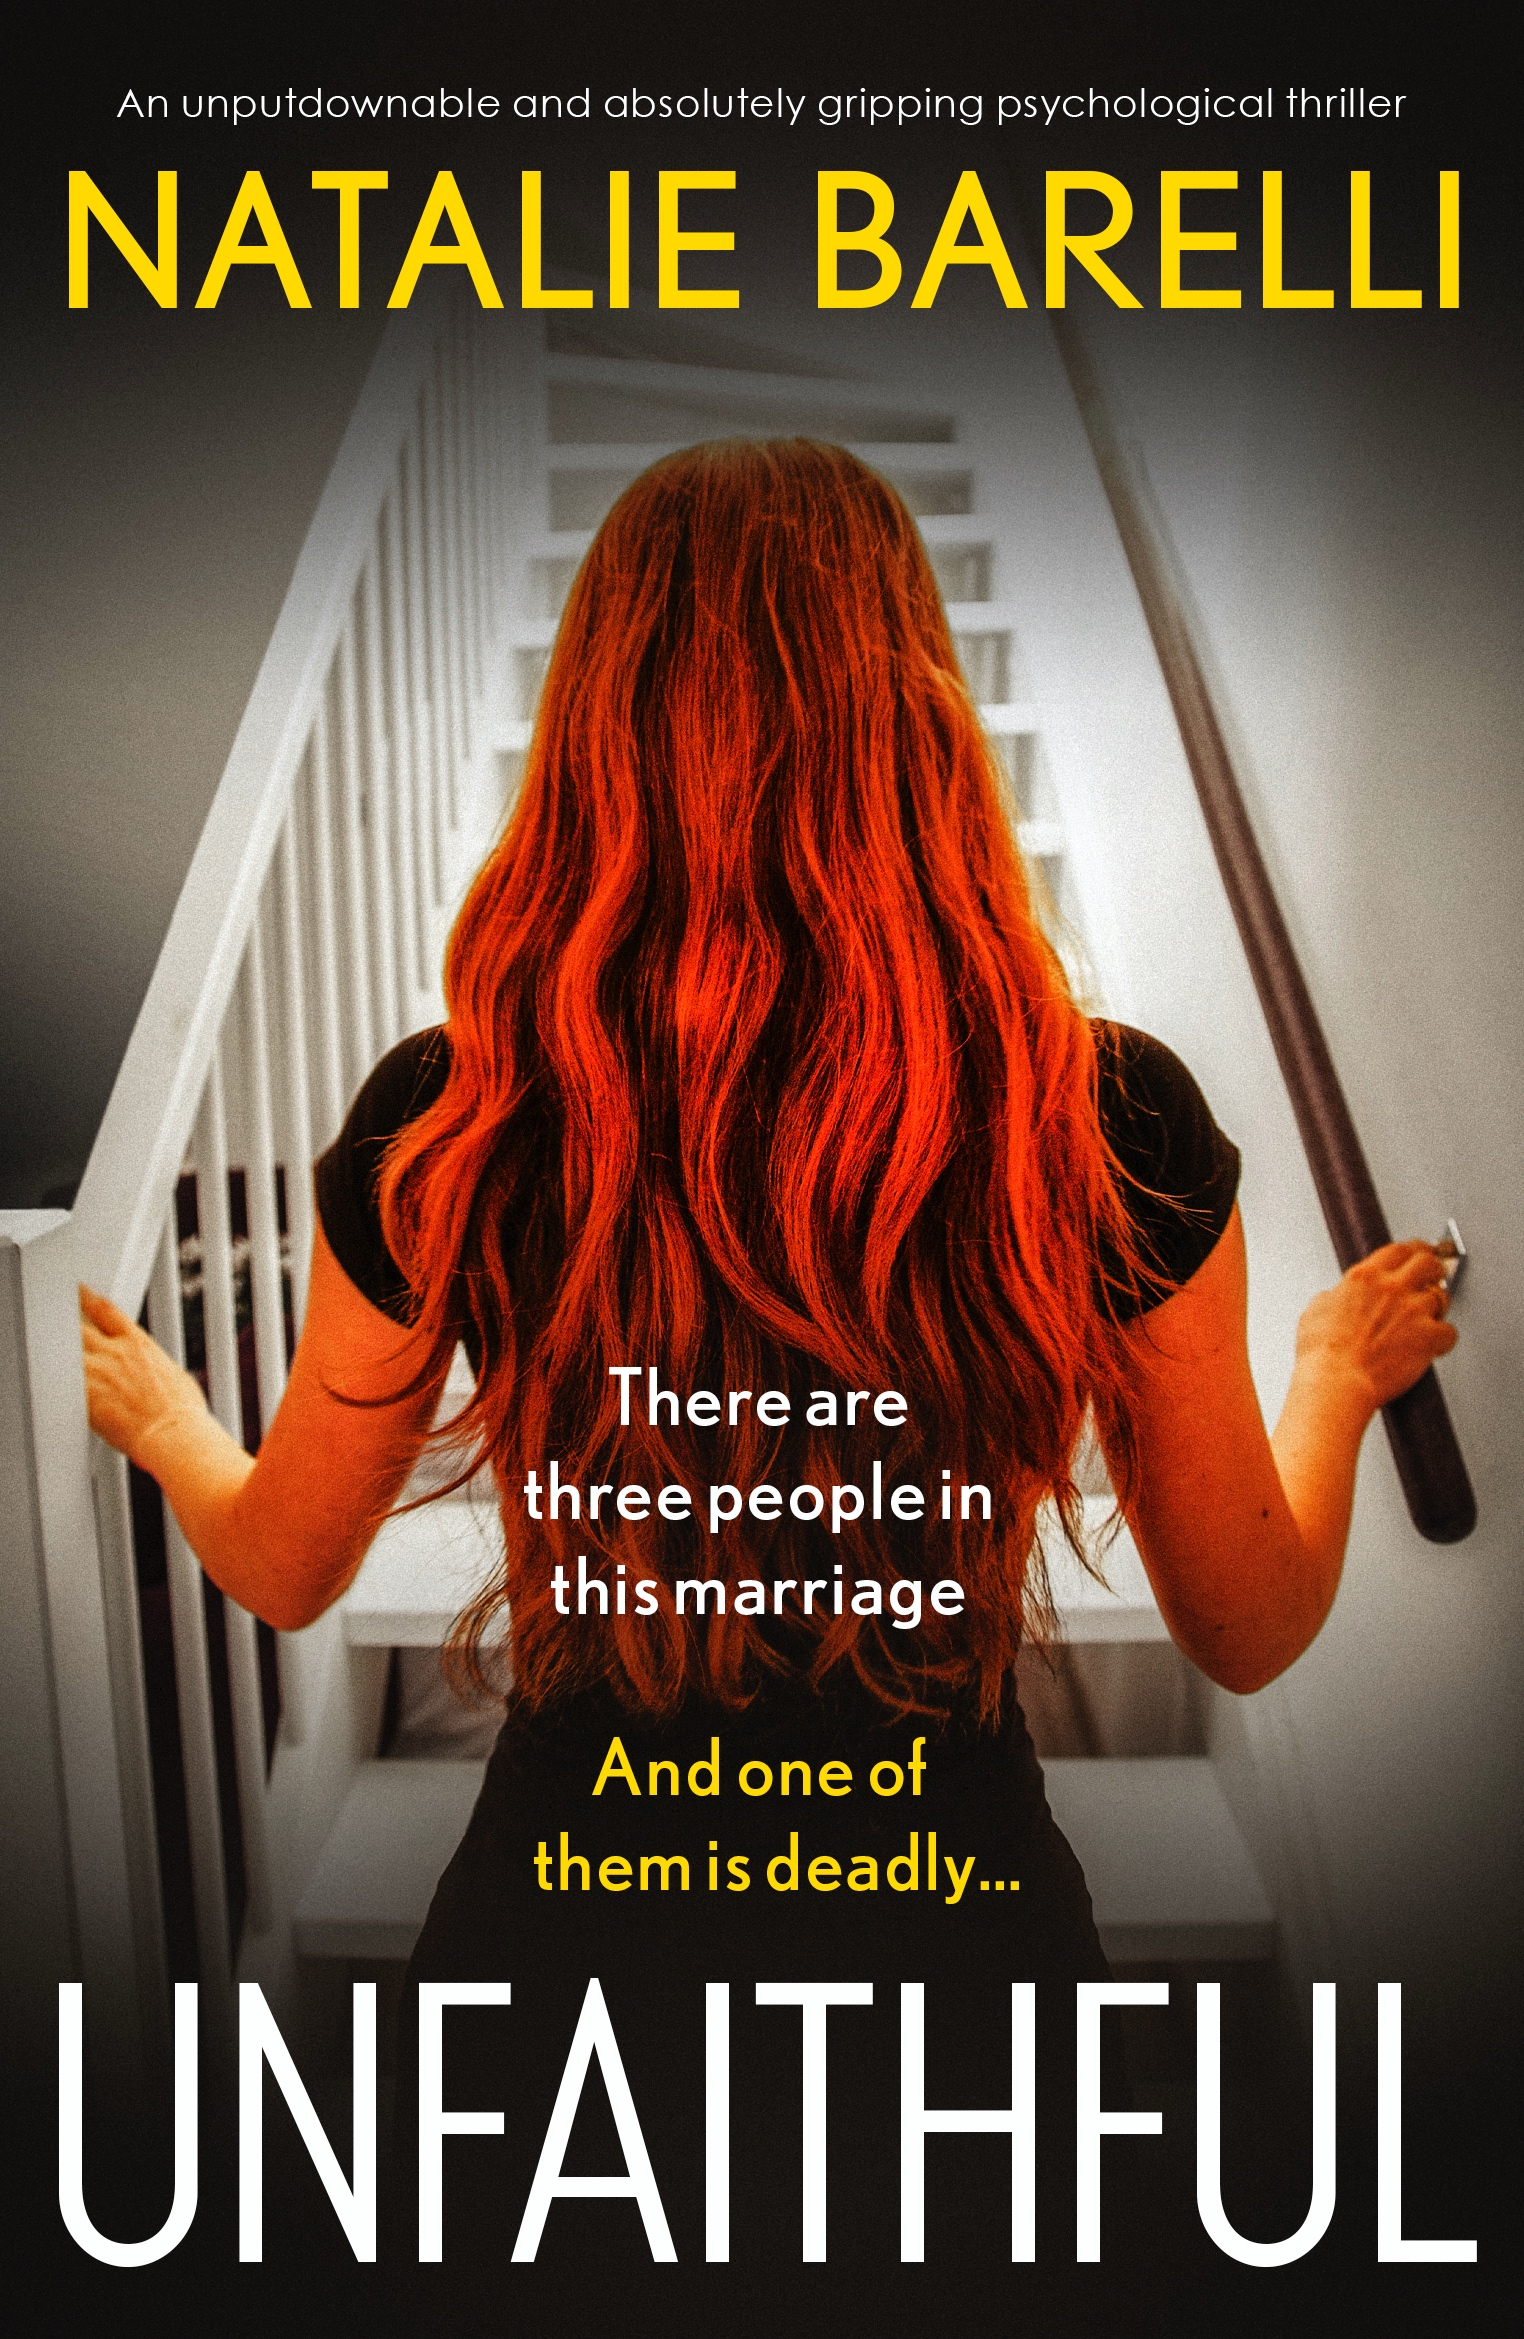 The complexity of a faithless marriage